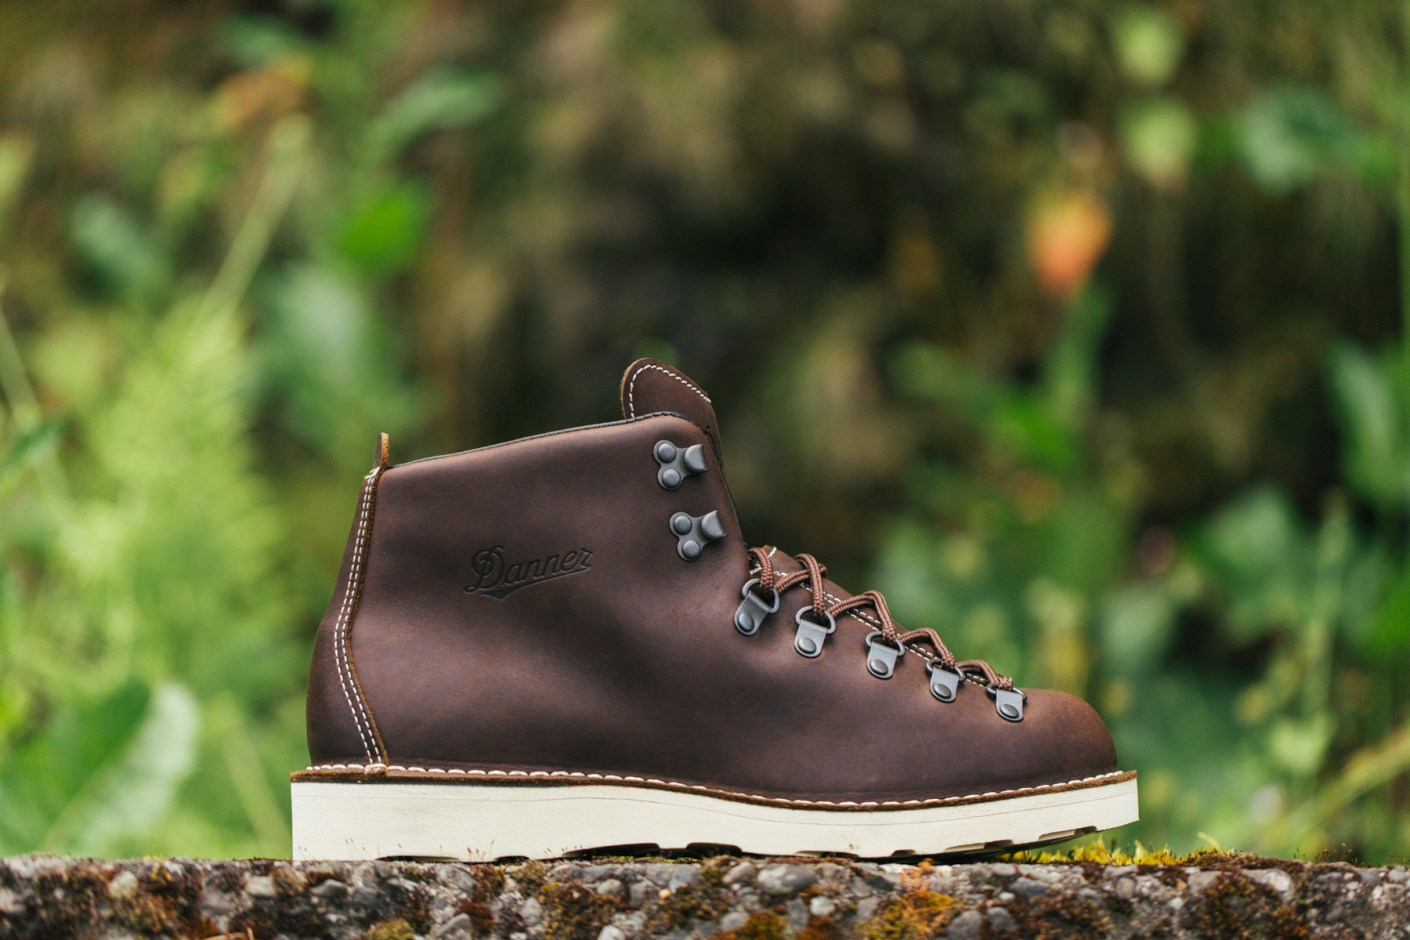 Image of COMME des GARÇONS x Danner 2013 Fall Mountain Light Boot